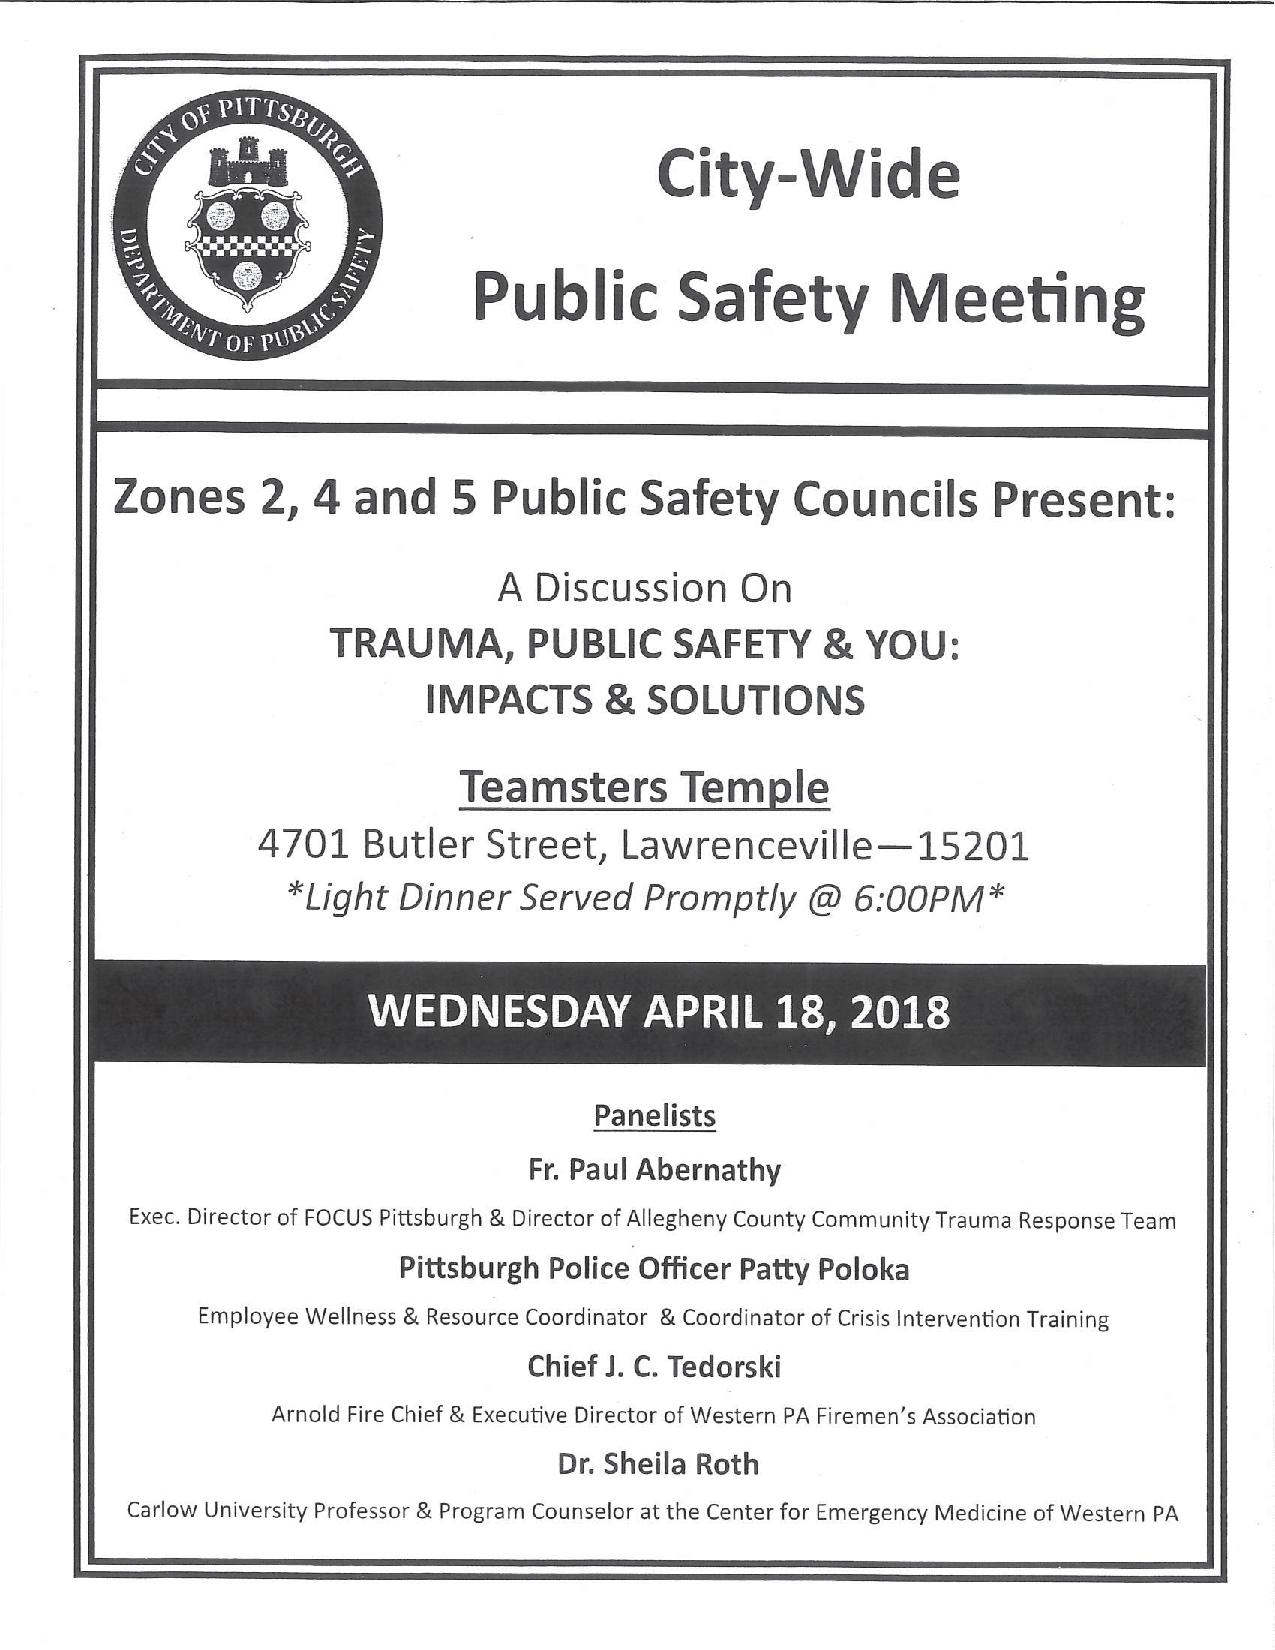 City-wide Public Safety Meeting_4.18.18-page-001.jpg